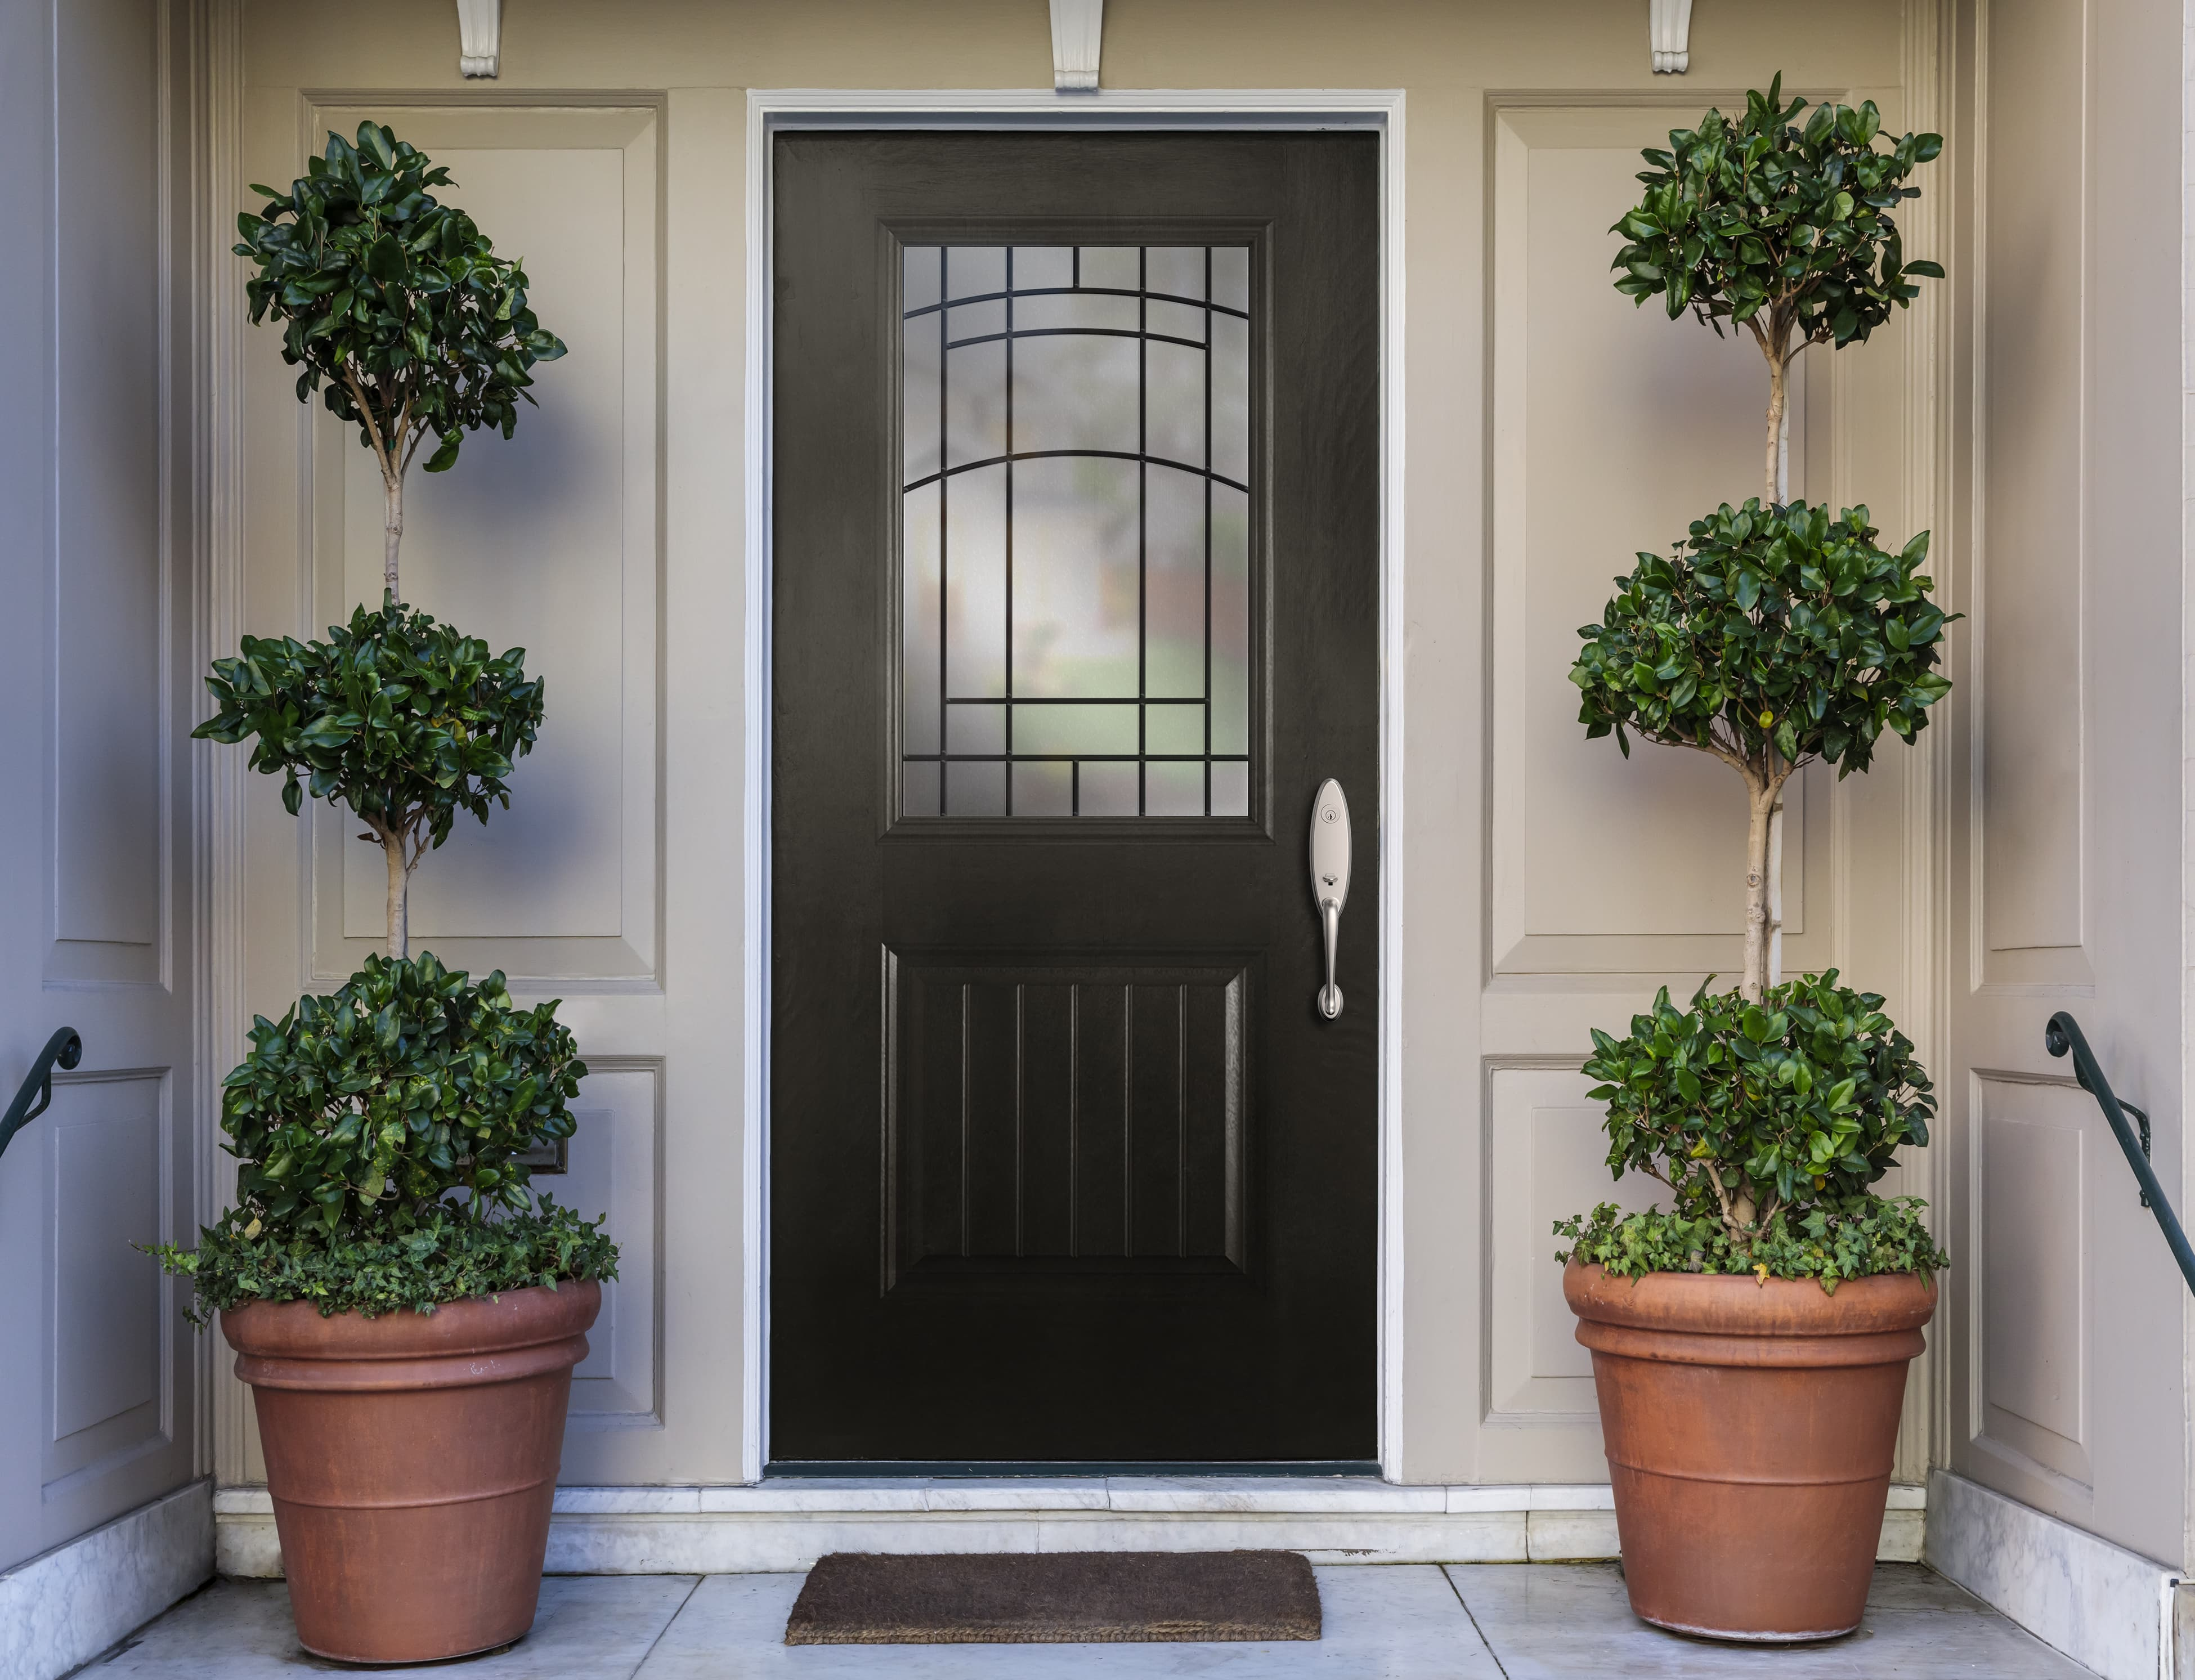 Black front door with decorative glass and greenery on either side